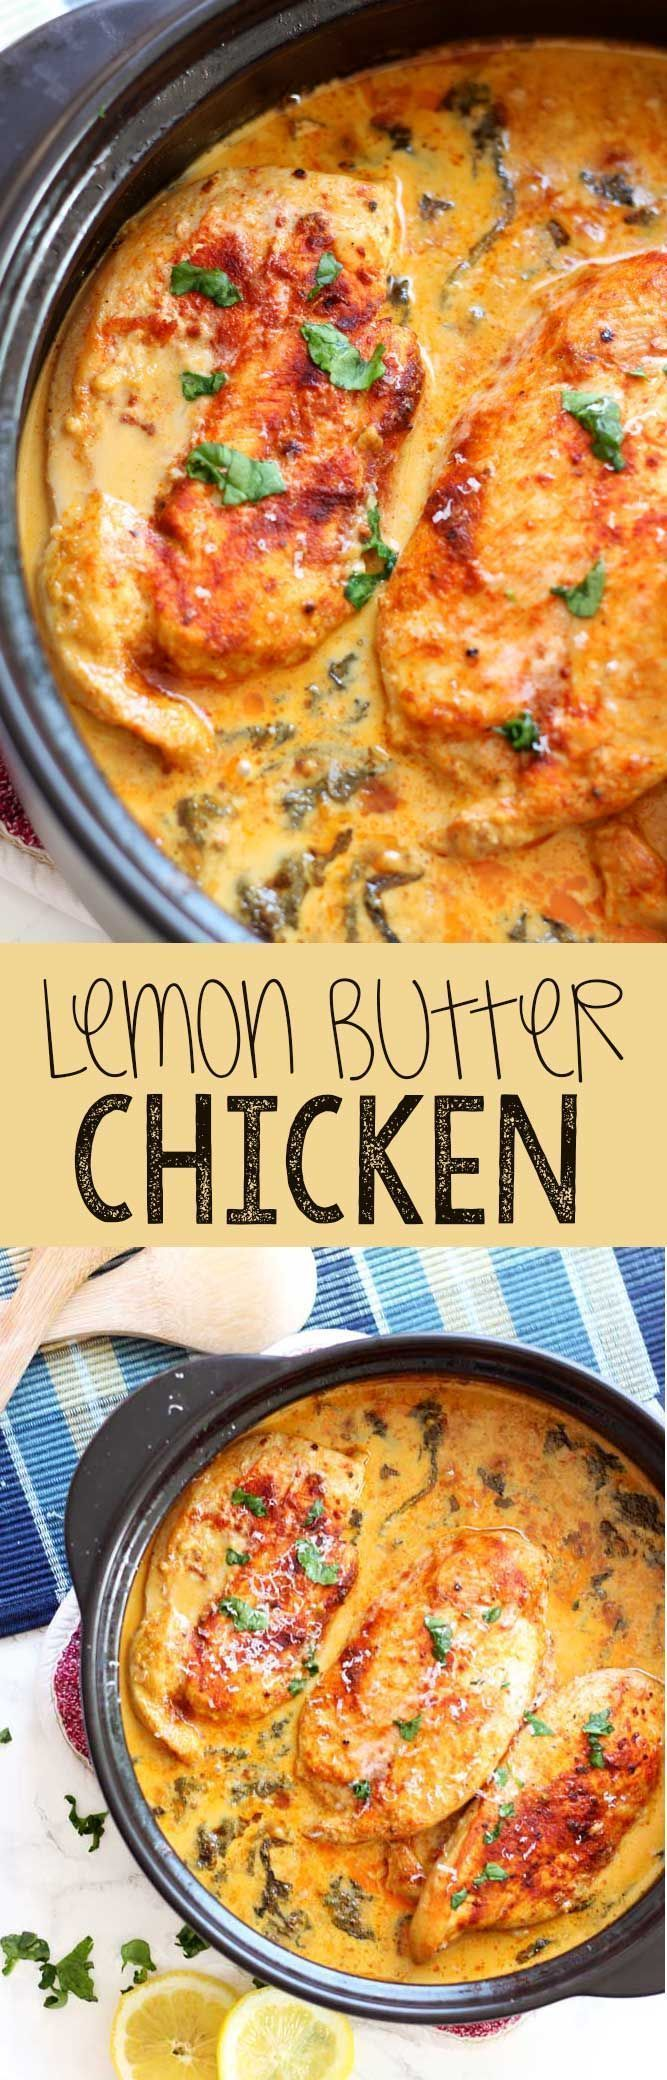 Easy chicken dinner, this lemon butter chicken is savory, mouthwatering, and easy to get on the table.